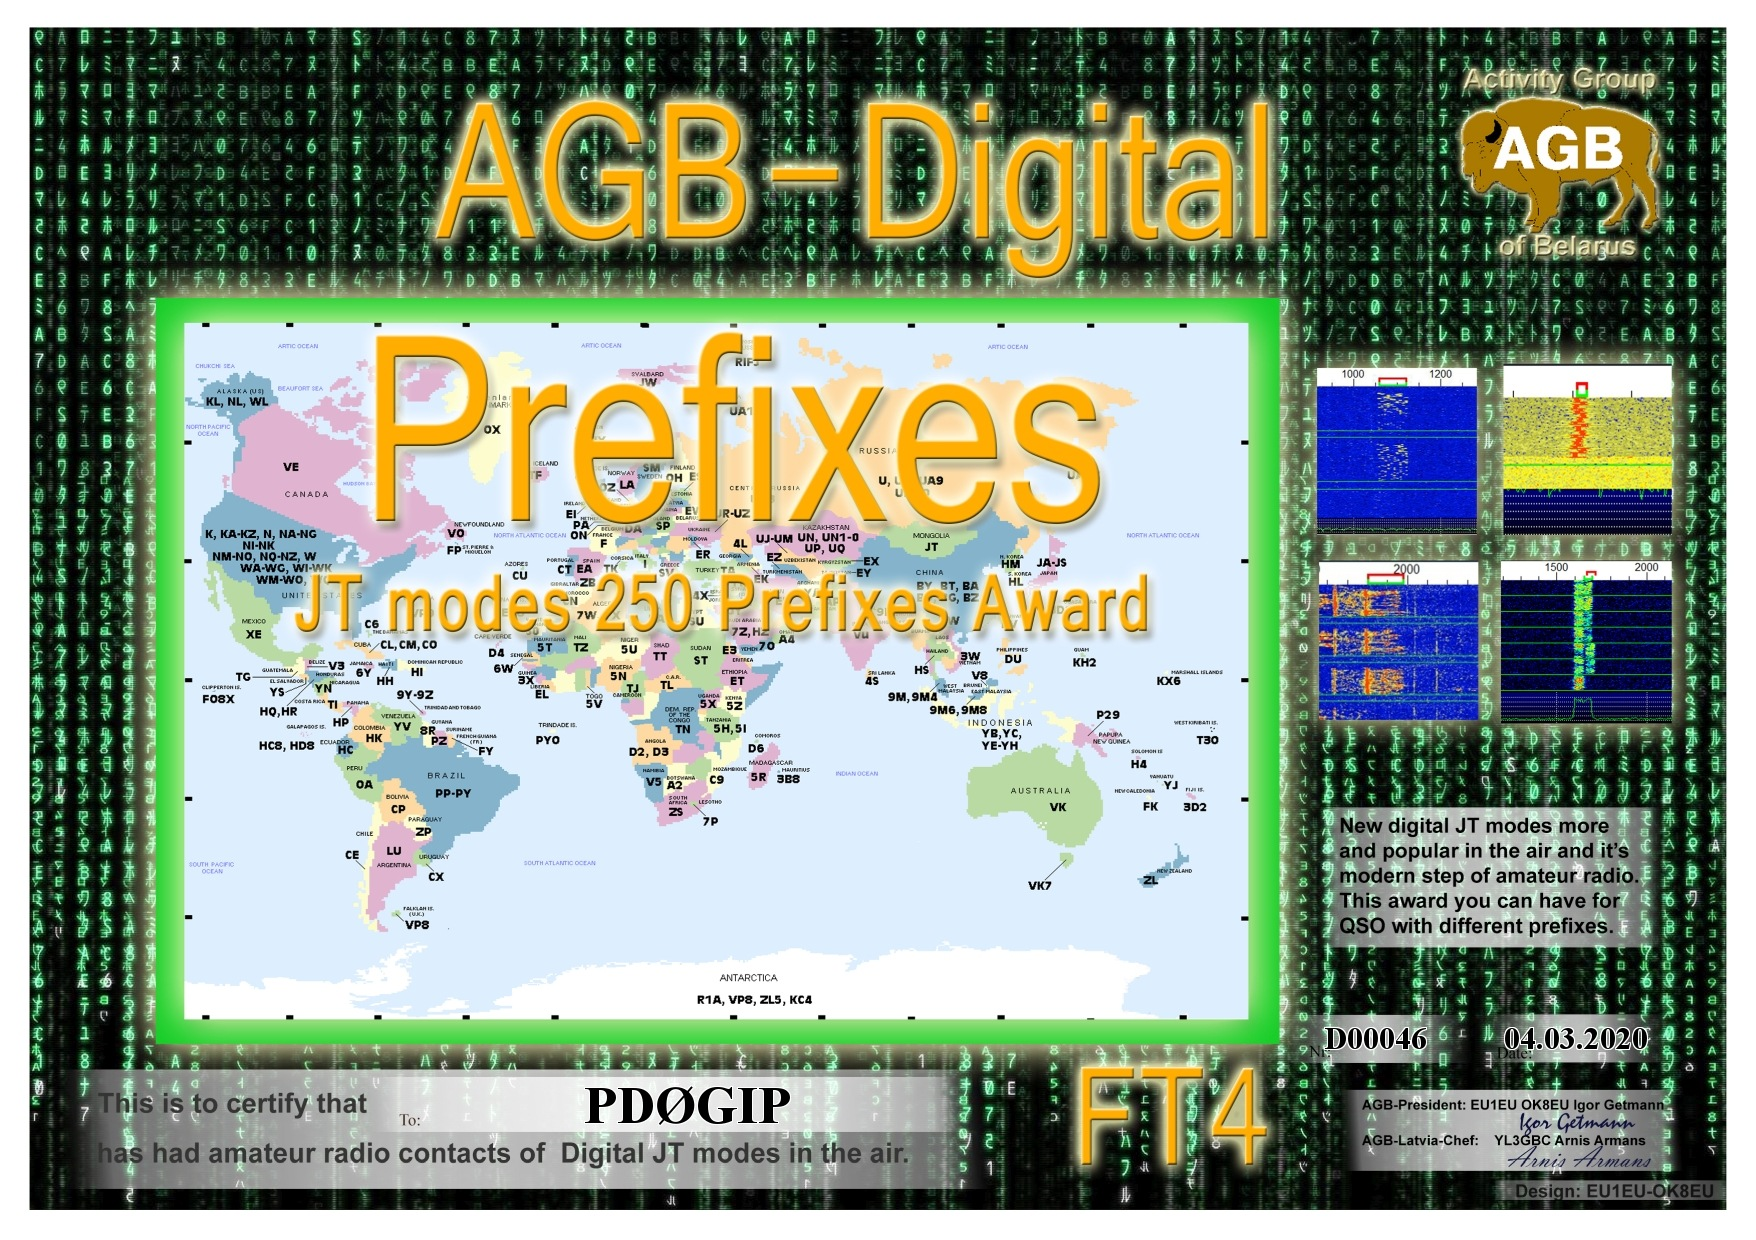 PD0GIP PREFIXES FT4 250 AGB